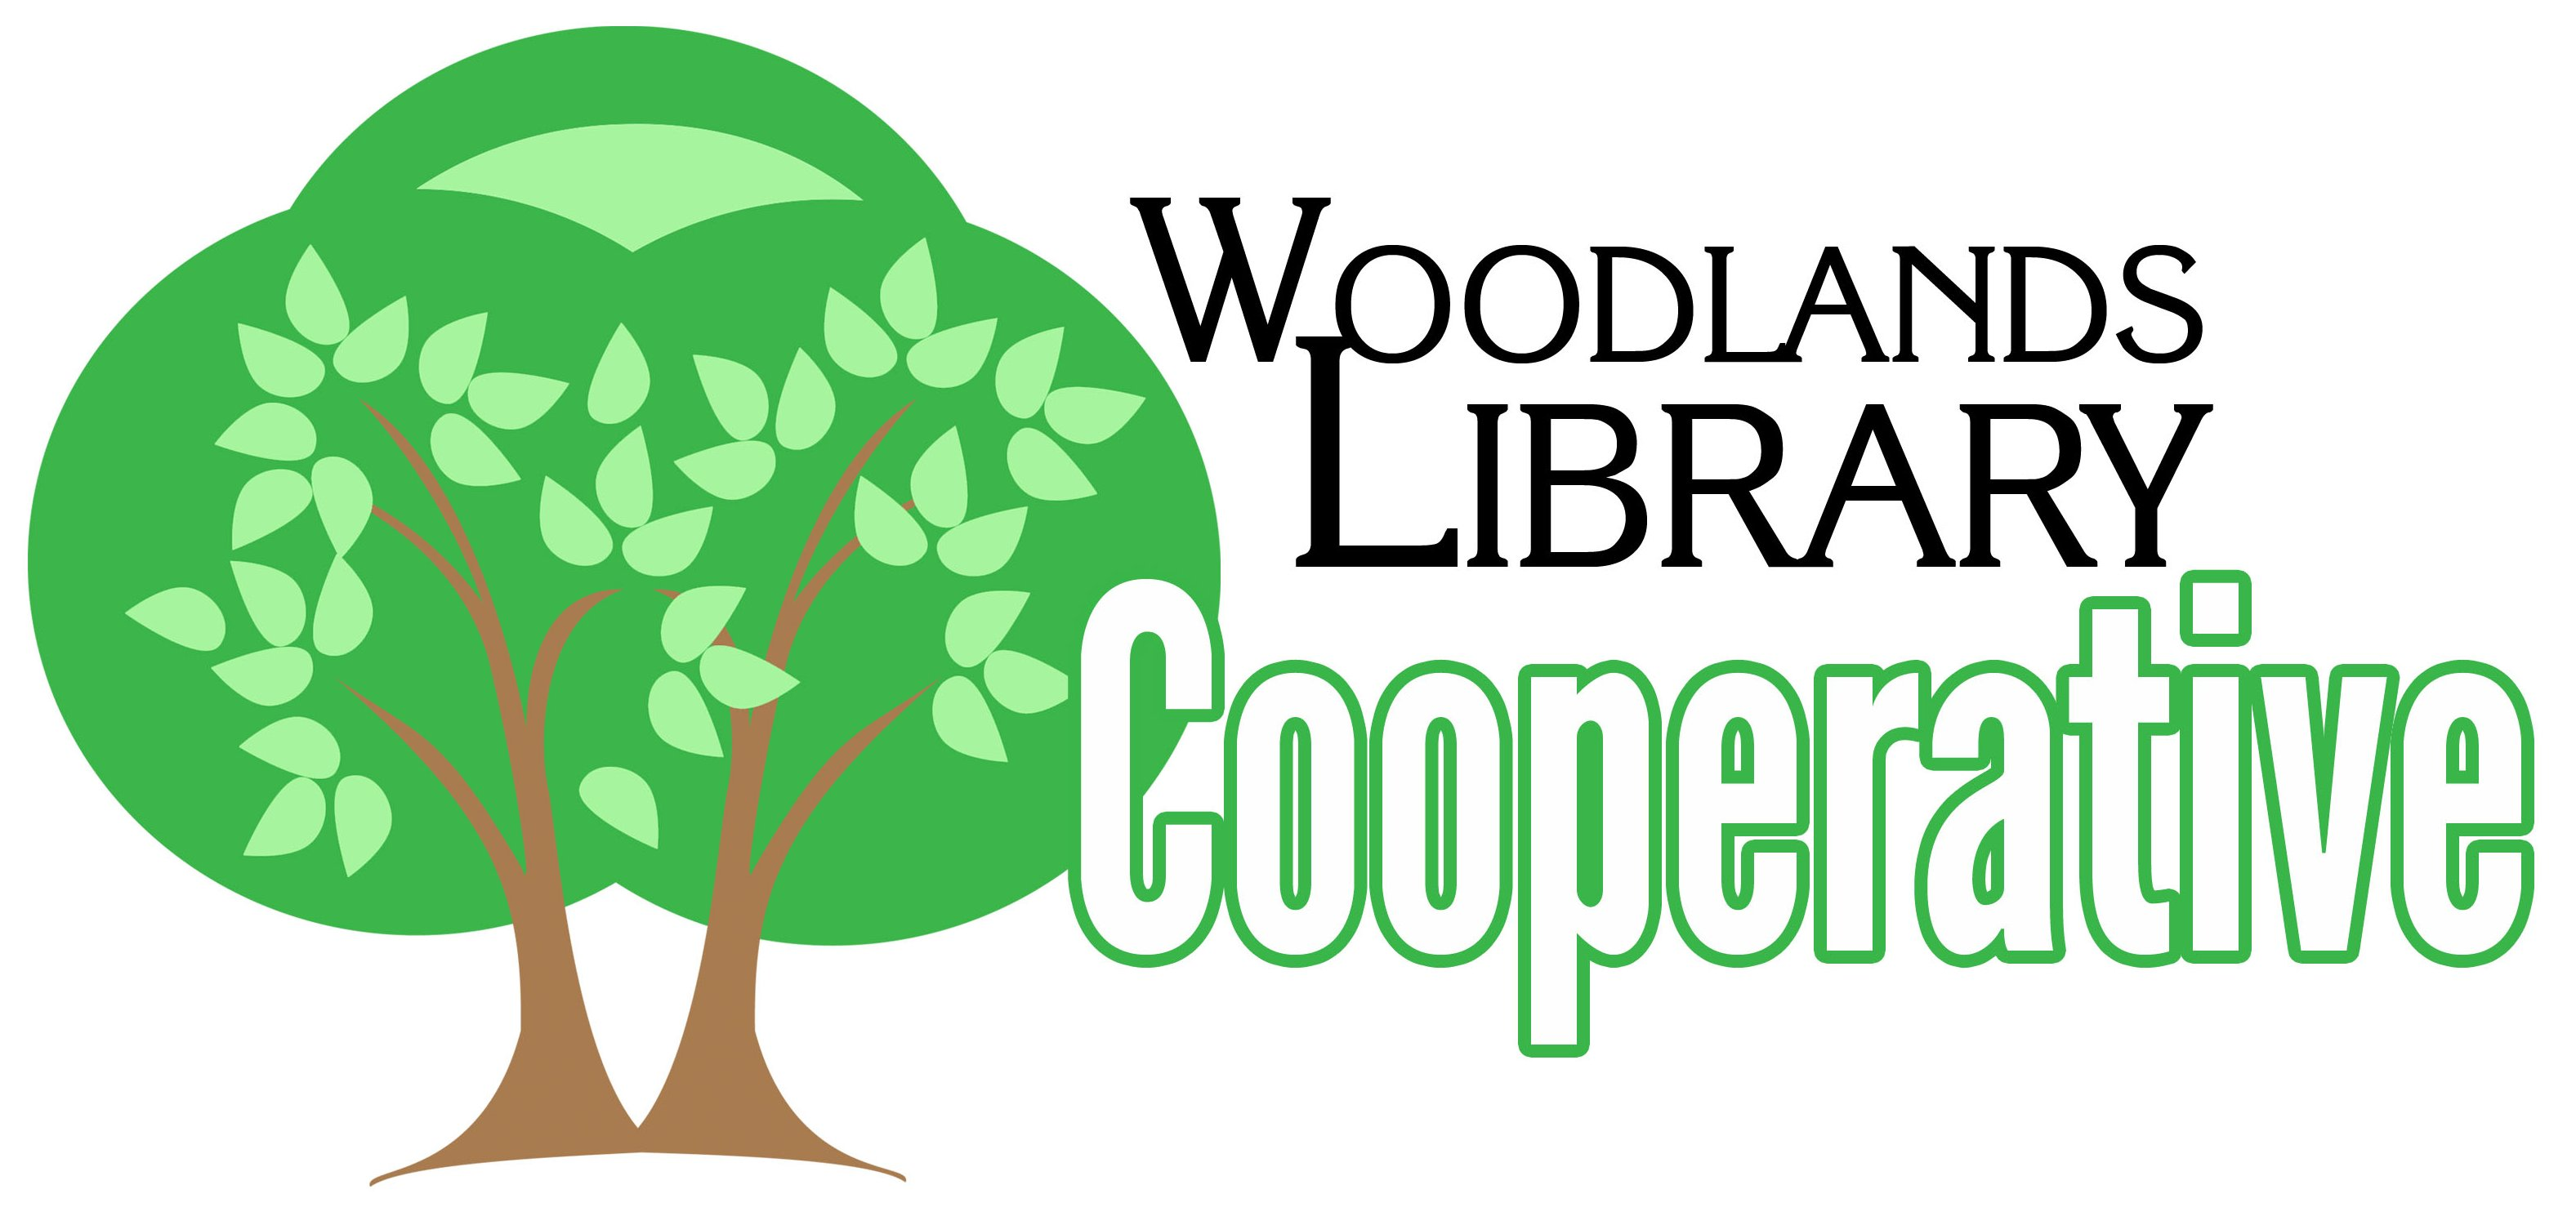 Inspirational clipart cooperative Monroe then Library of sizes